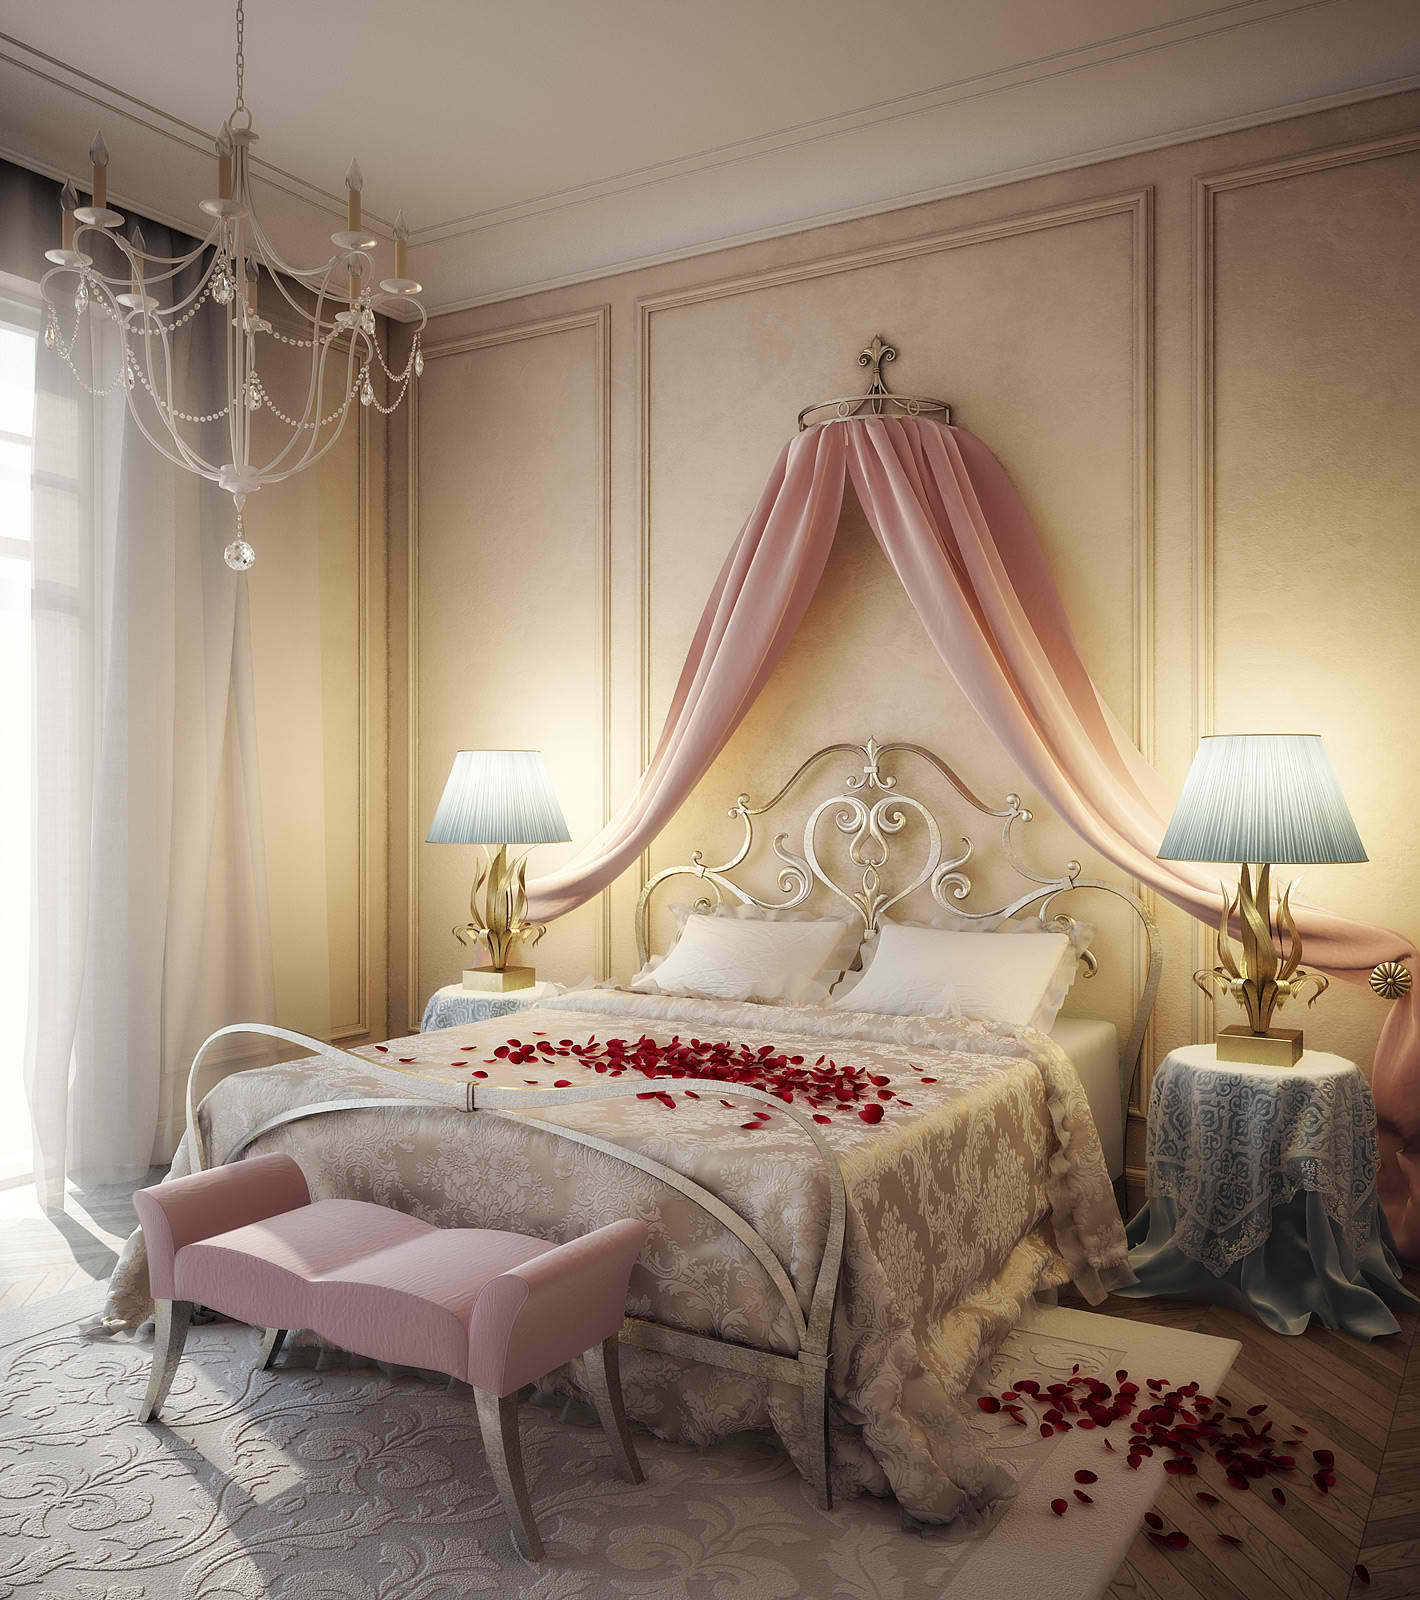 20 romantic bedroom ideas decoholic for Bed design ideas